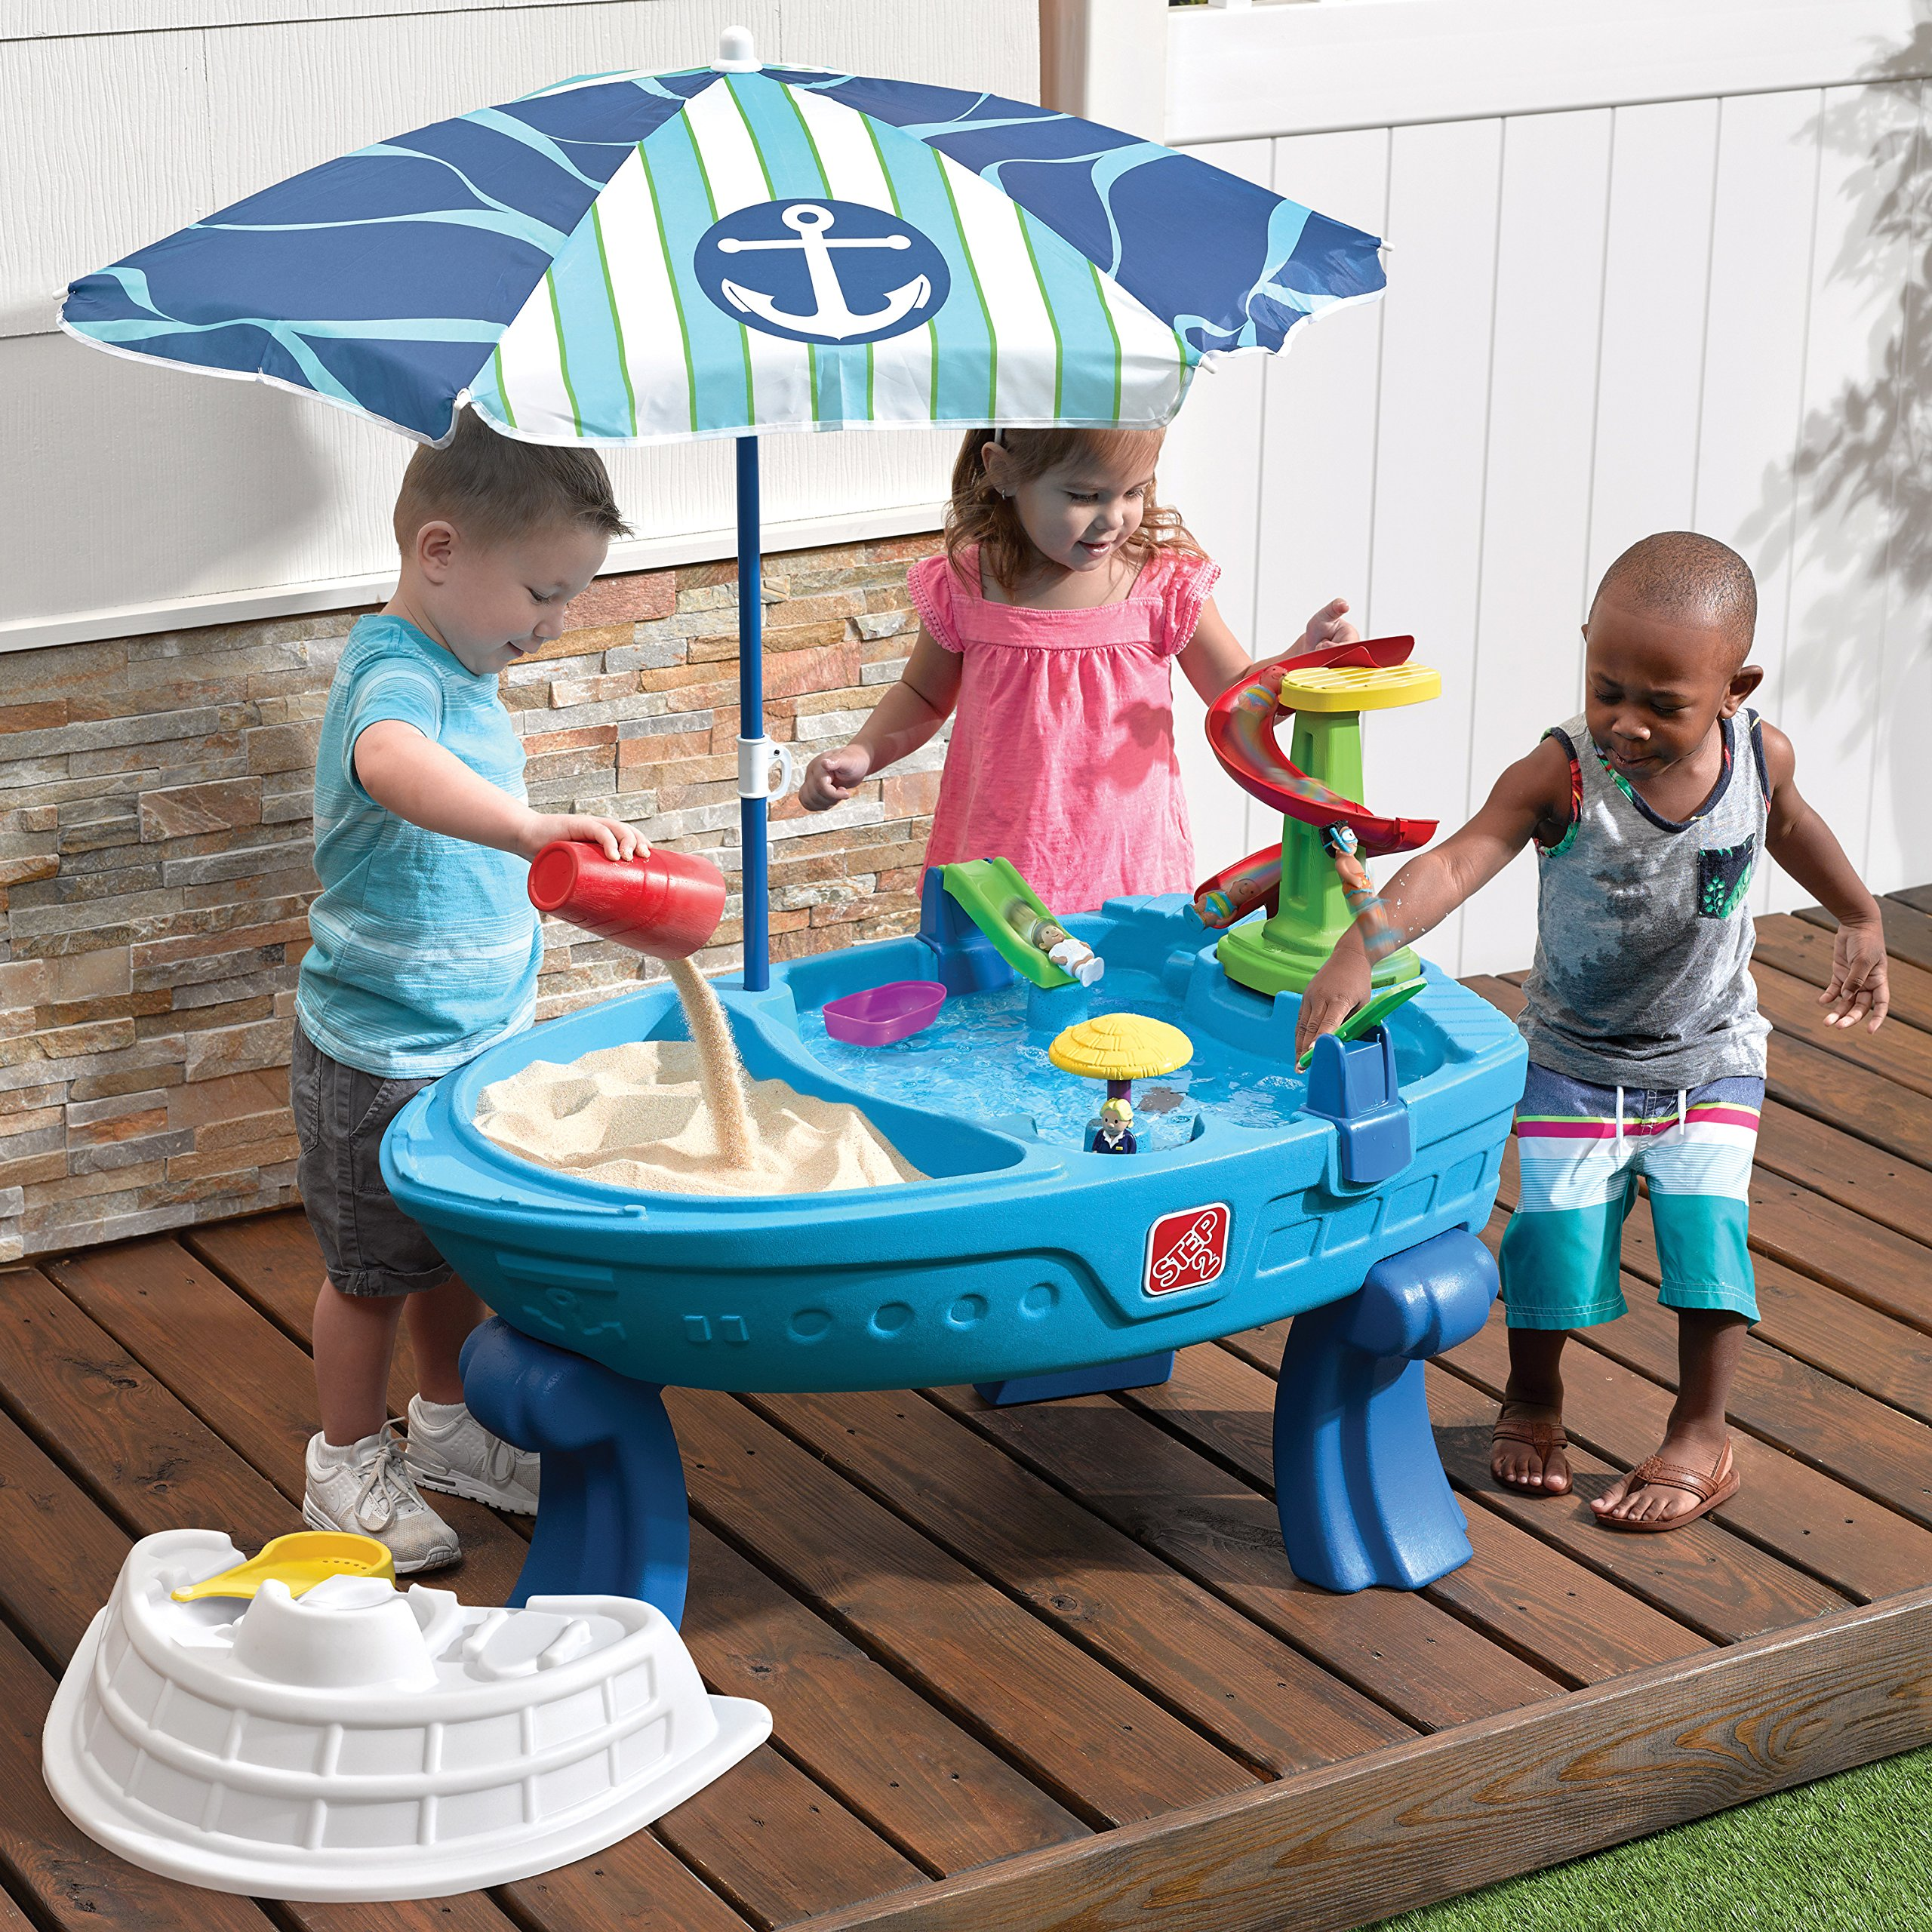 11 Best Outdoor Water Toys for Toddlers to Have Fun in the Sun!